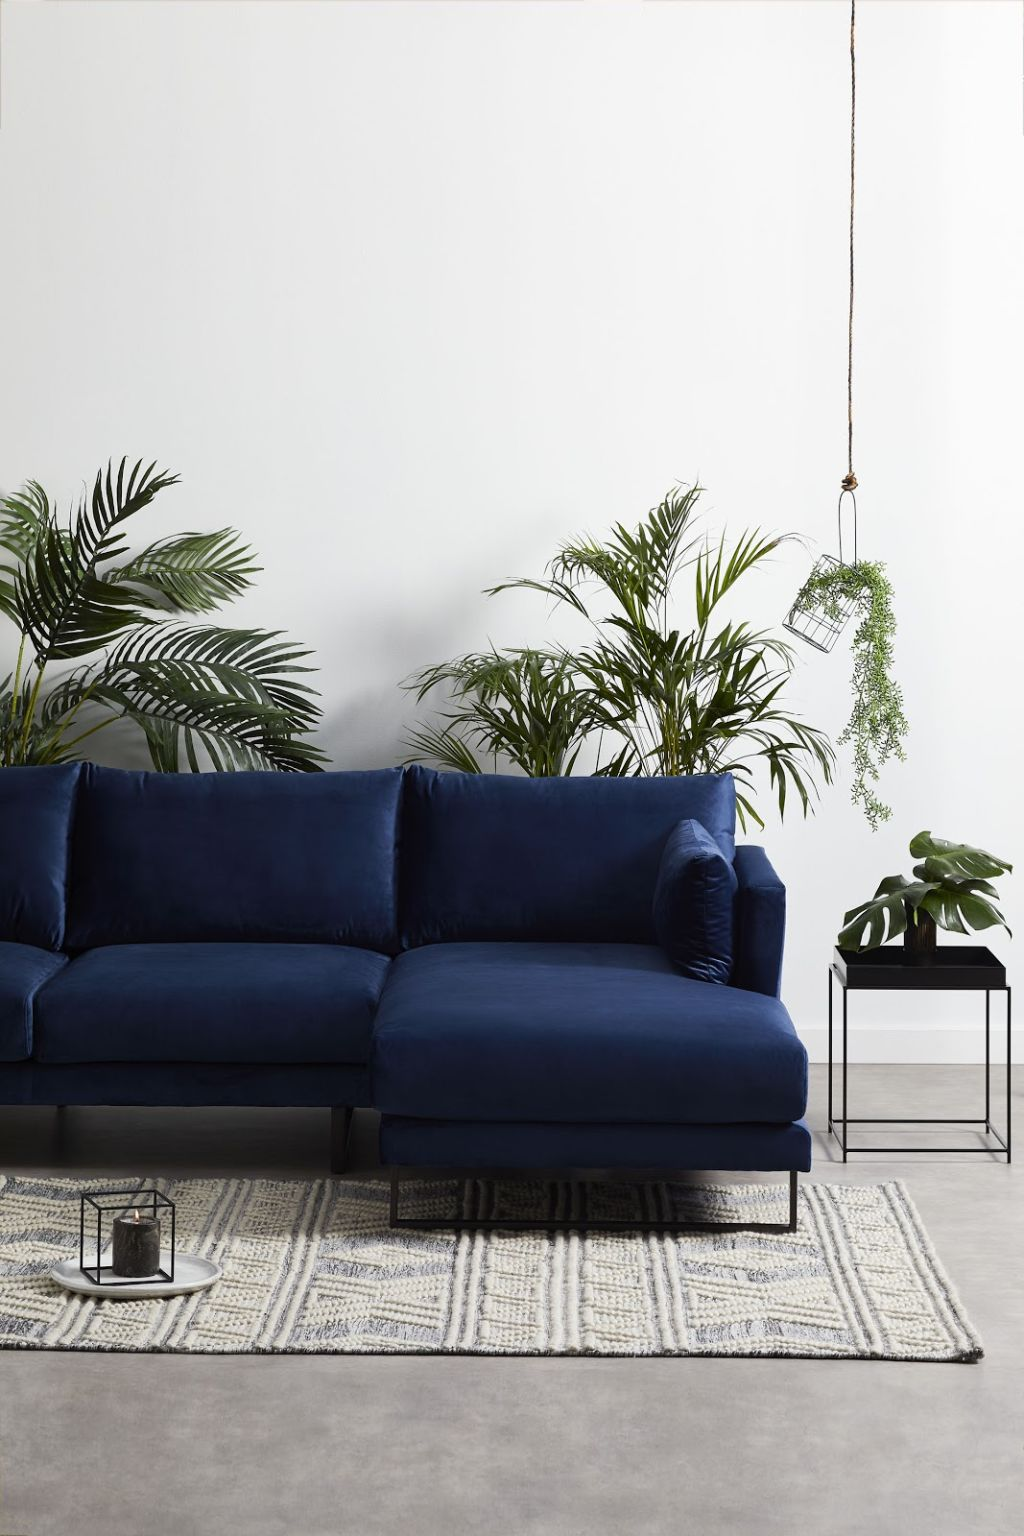 Peachy How To Choose The Right Sofa And Get The Most Out Of It Caraccident5 Cool Chair Designs And Ideas Caraccident5Info